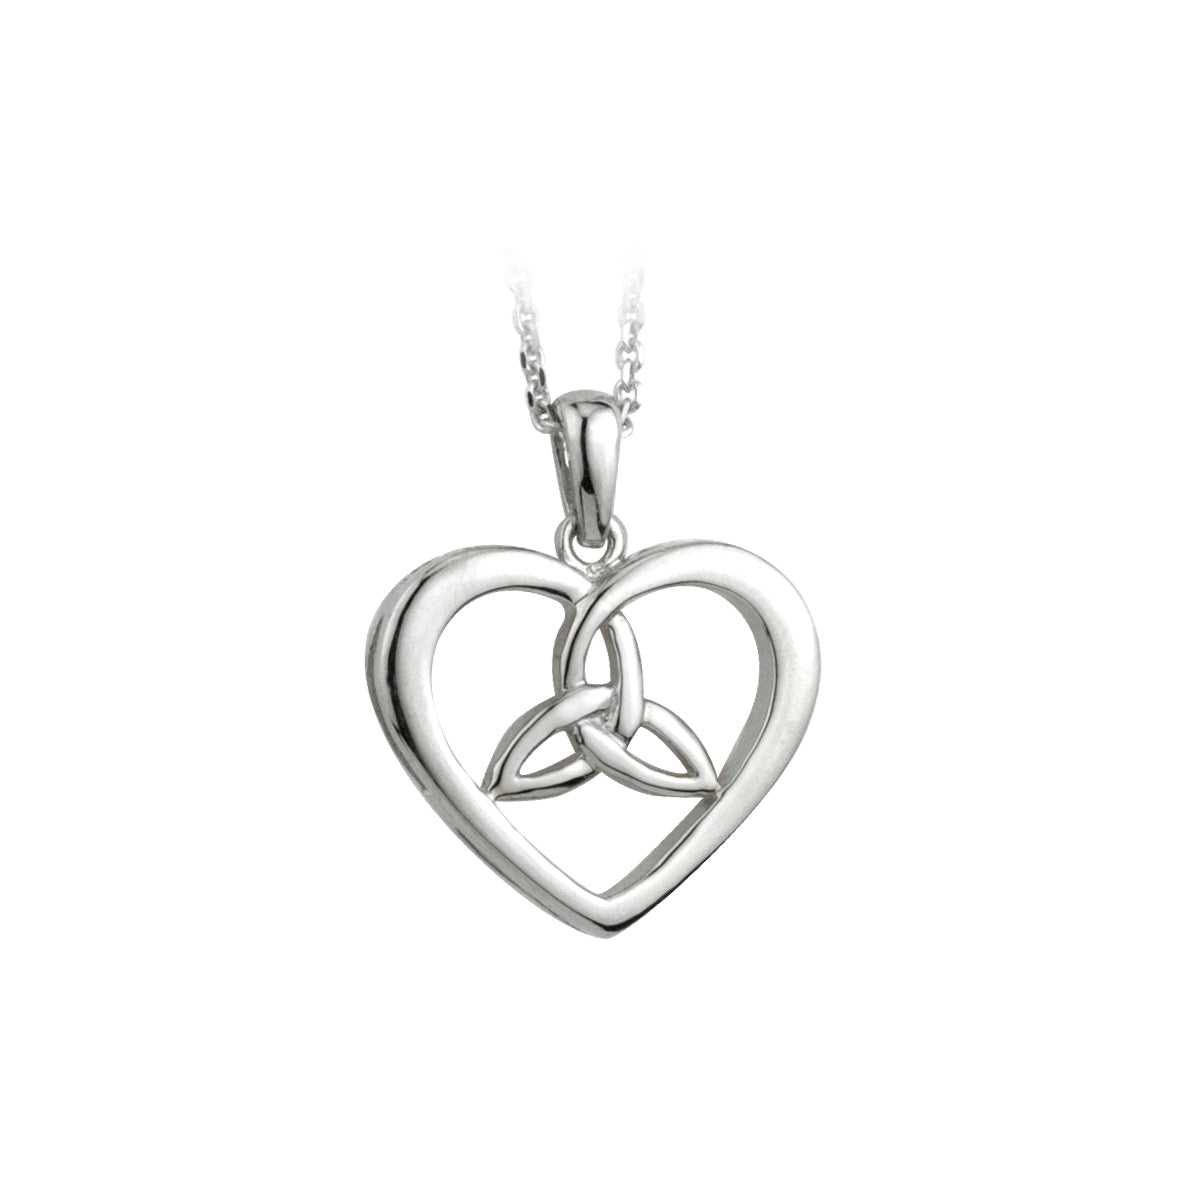 Heart trinity knot pendant celtic collections heart trinity knot pendant aloadofball Choice Image